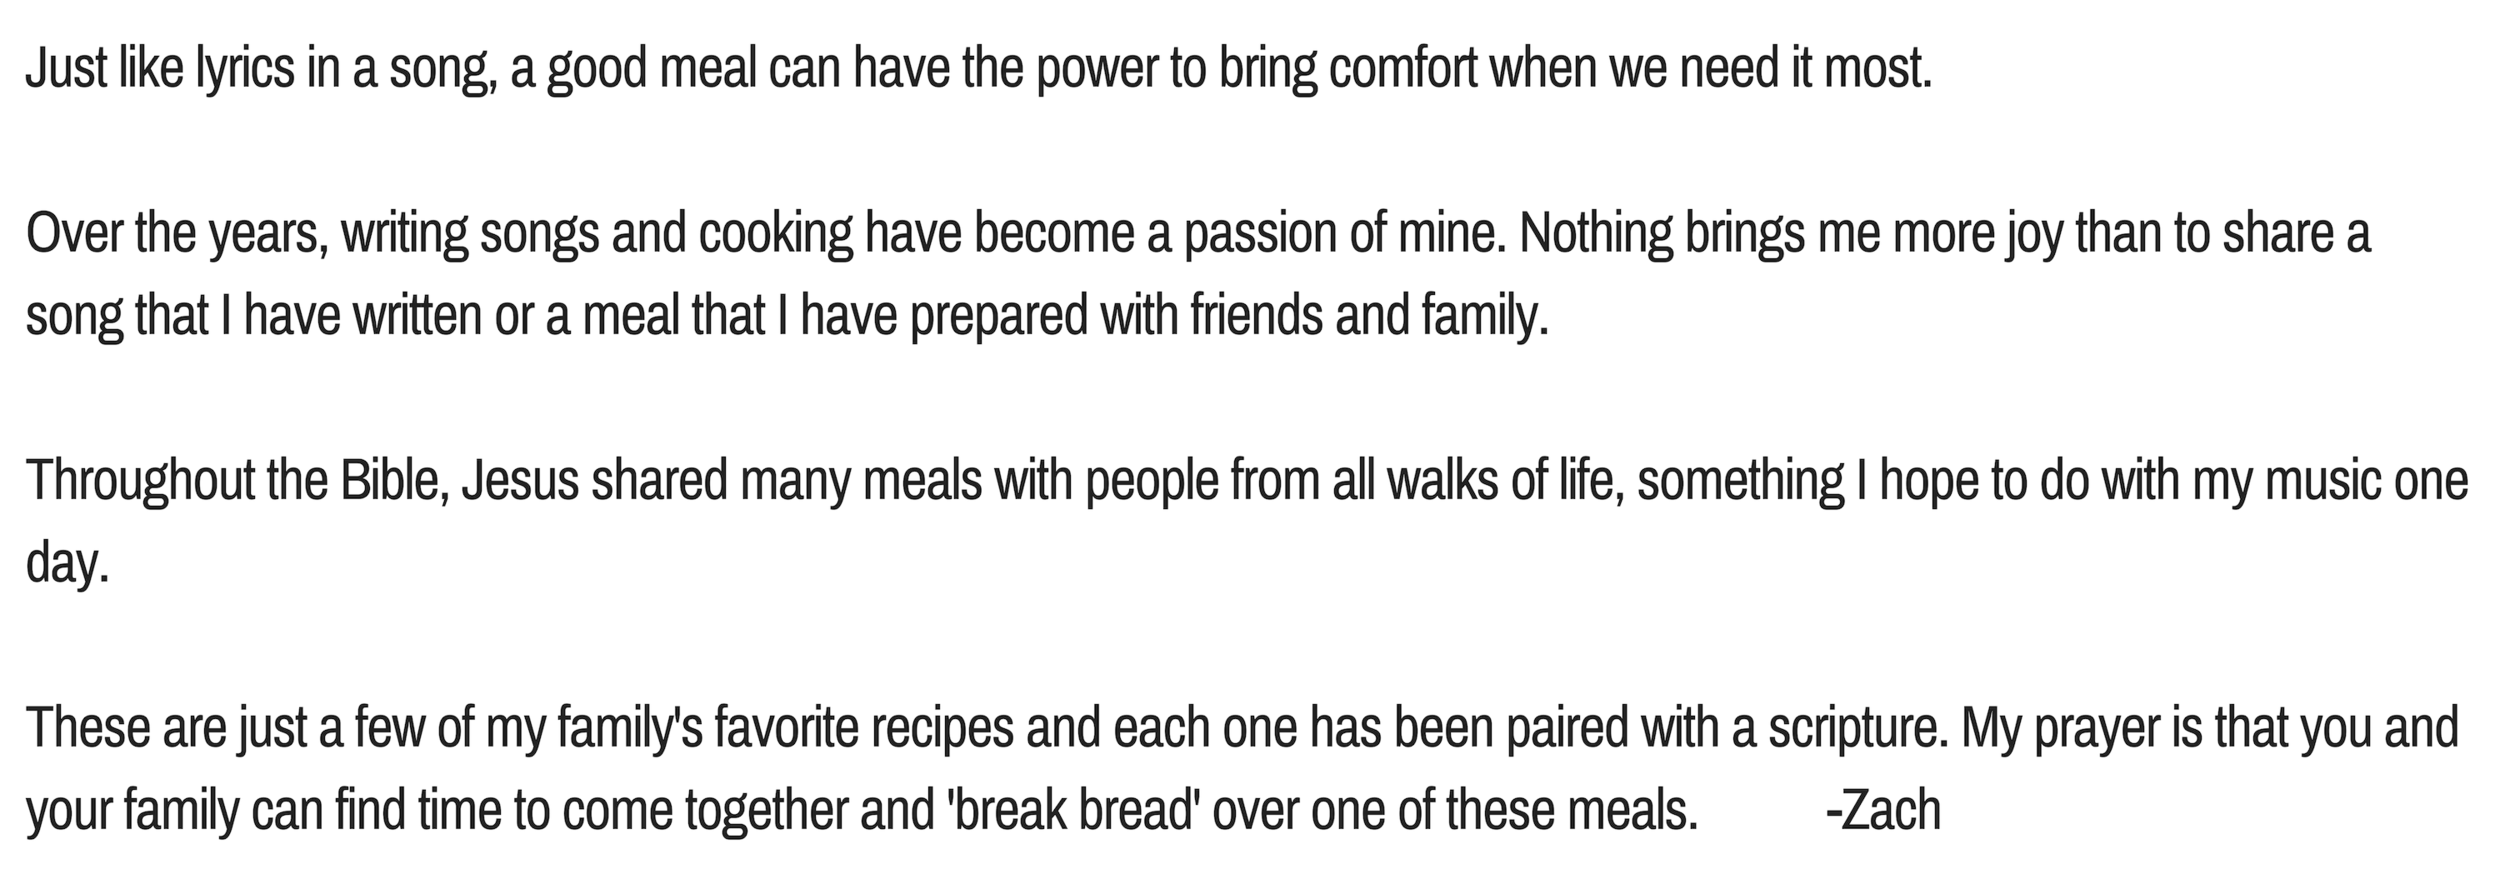 Just like lyrics in a song, a good meal can have the power to bring comfort when we need it most. Over the years, writing songs and cooking have become a passion of mine. Nothing brings me more joy than to share .png